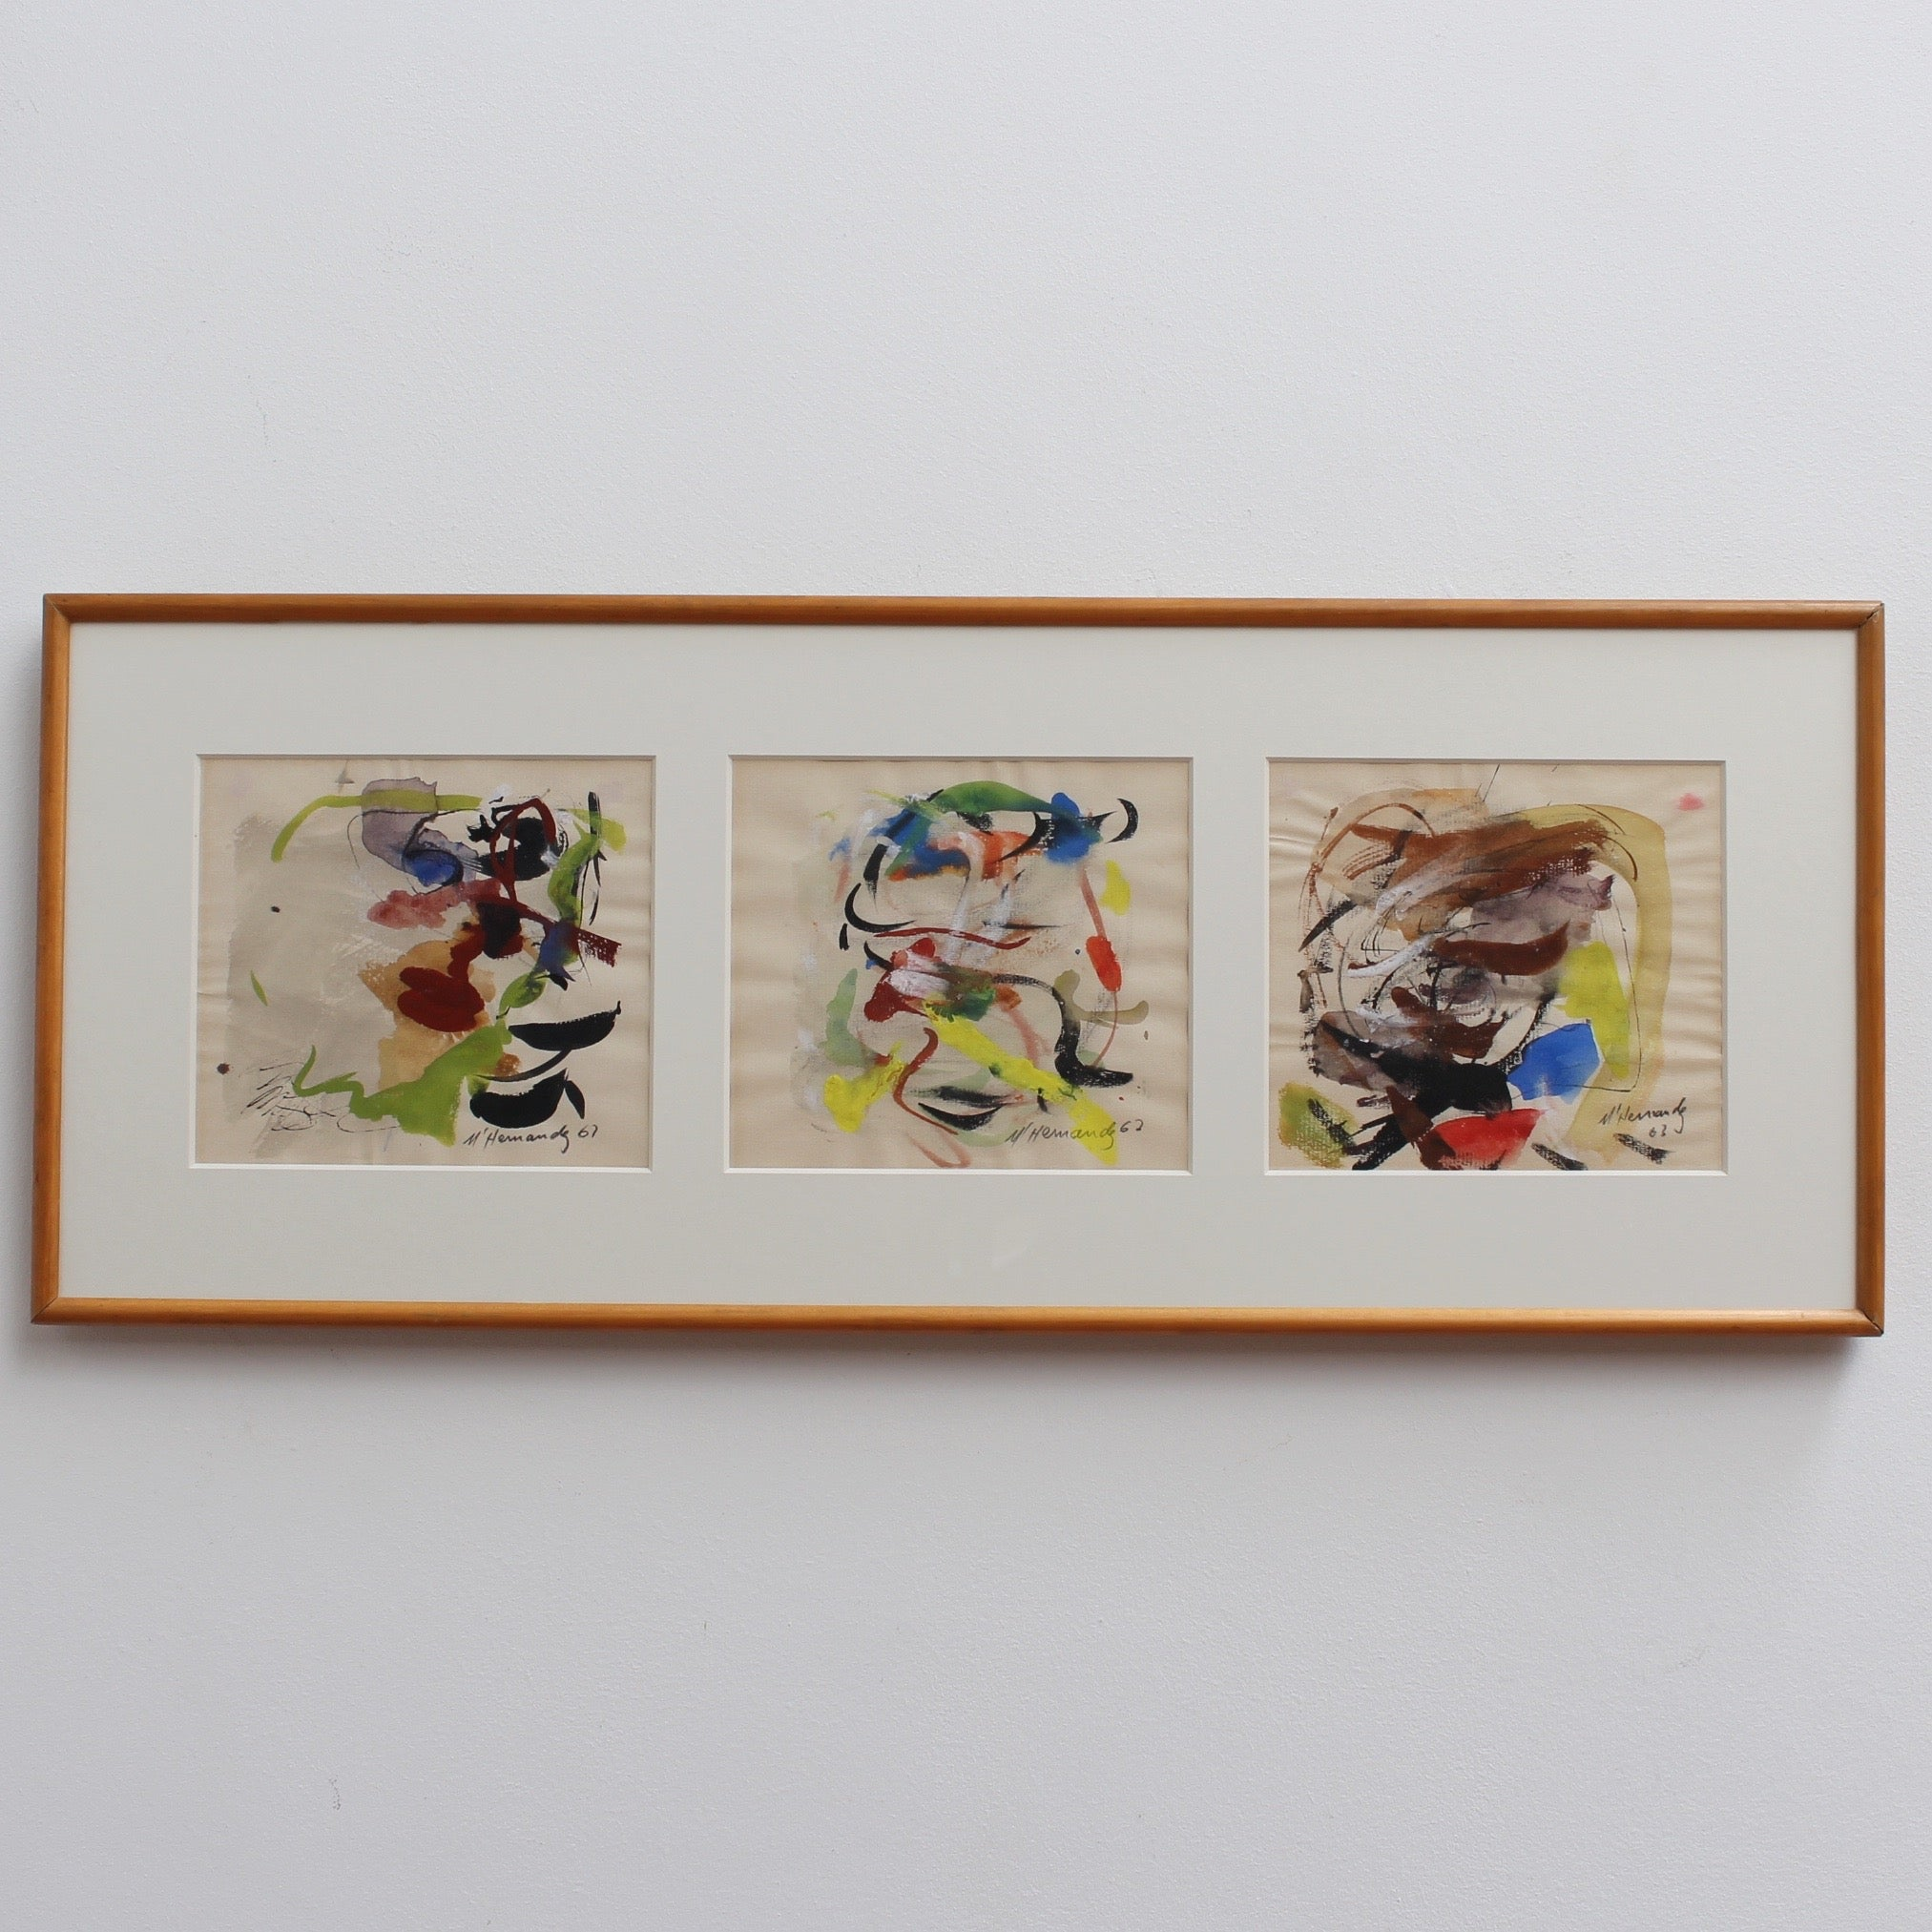 Abstract Triptych by M. Hernandez (1960s) – Bureau of Interior ...